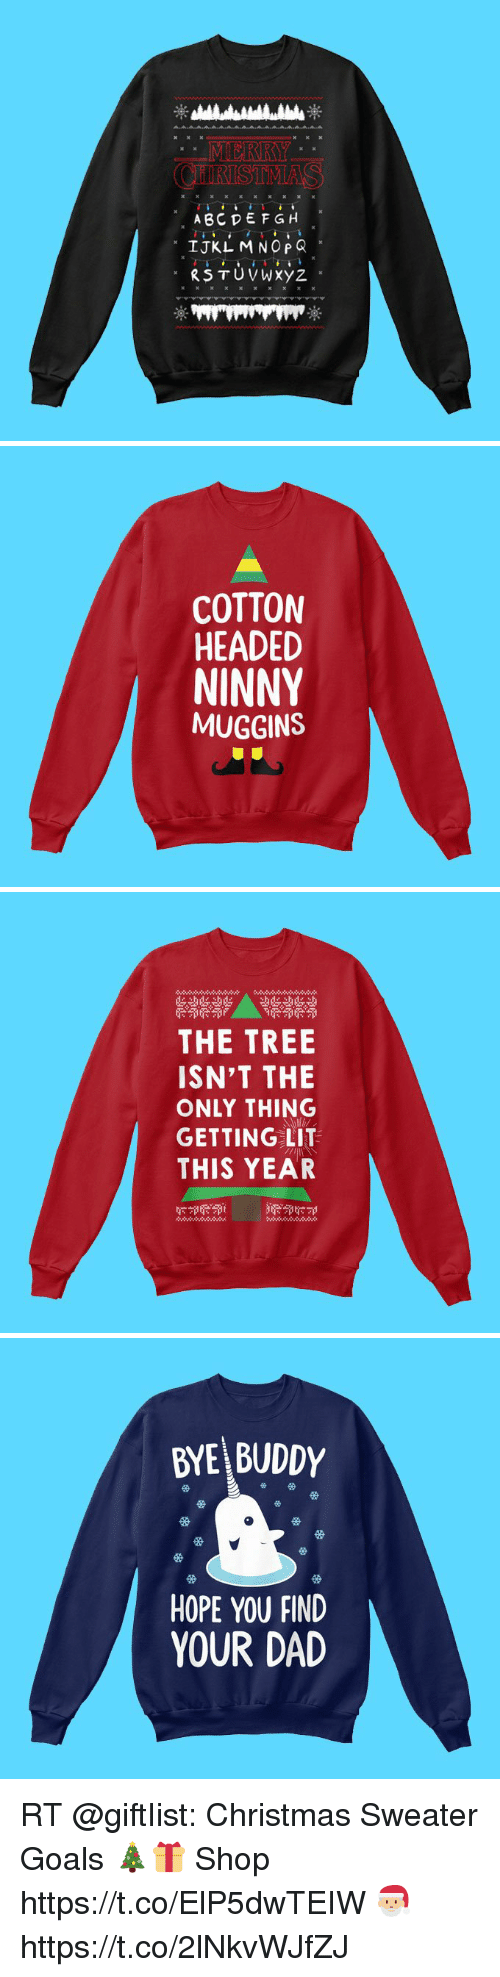 ABC DEFGH IJKL MNOP Q Ax COTTON HEADED NINNY MUGGINS THE TREE ISN\'T ...